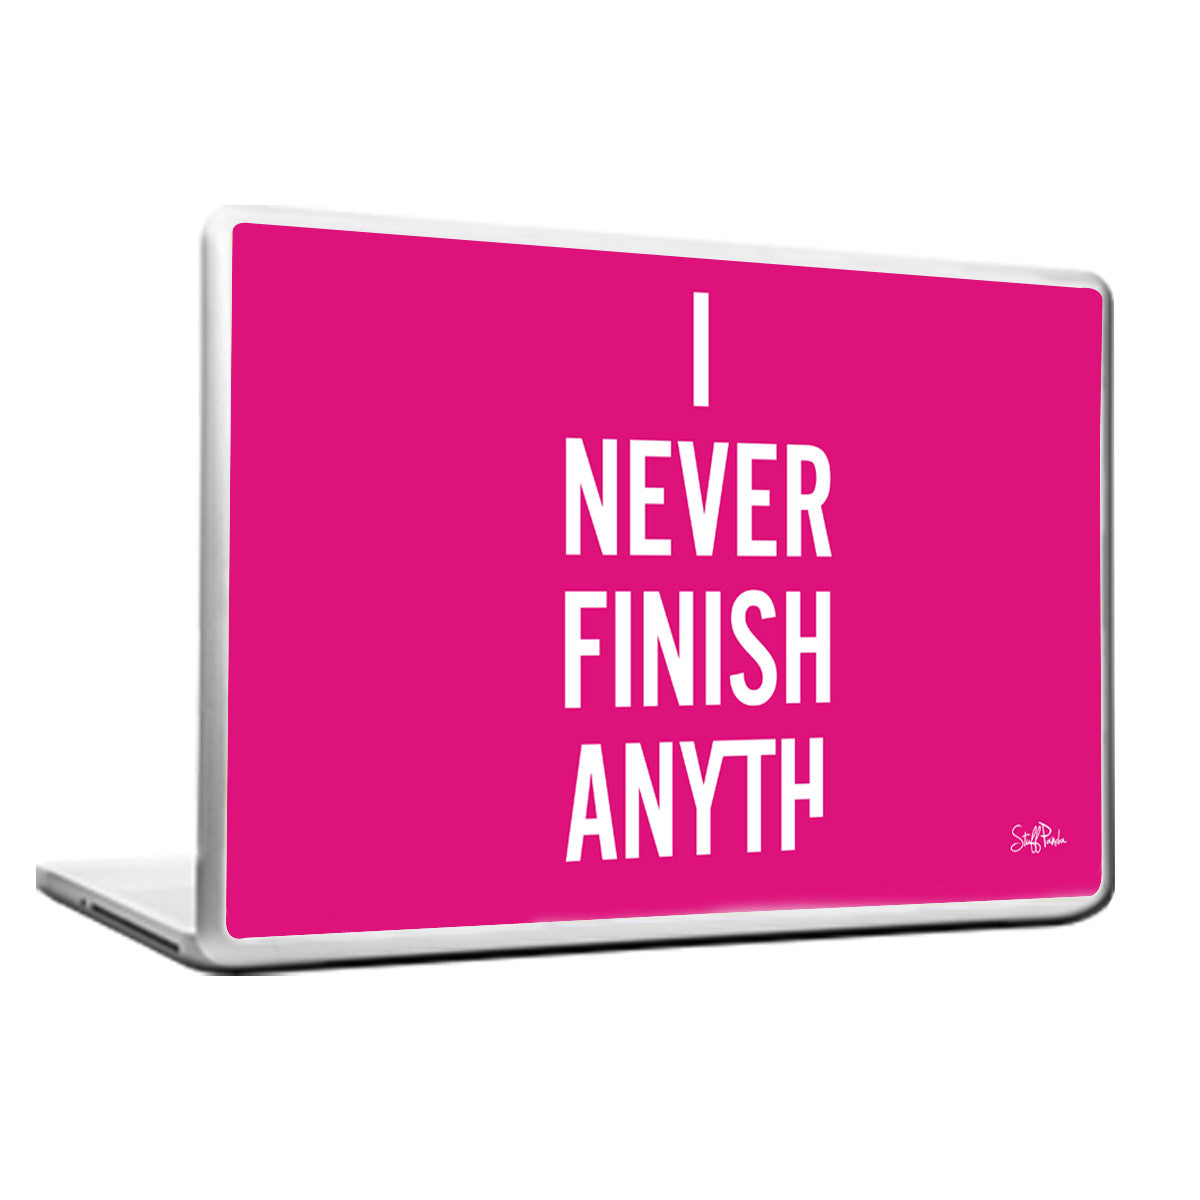 Cool Funky Funny I never Finish Laptop skin vinyl decals Pink - stuffpanda - 1